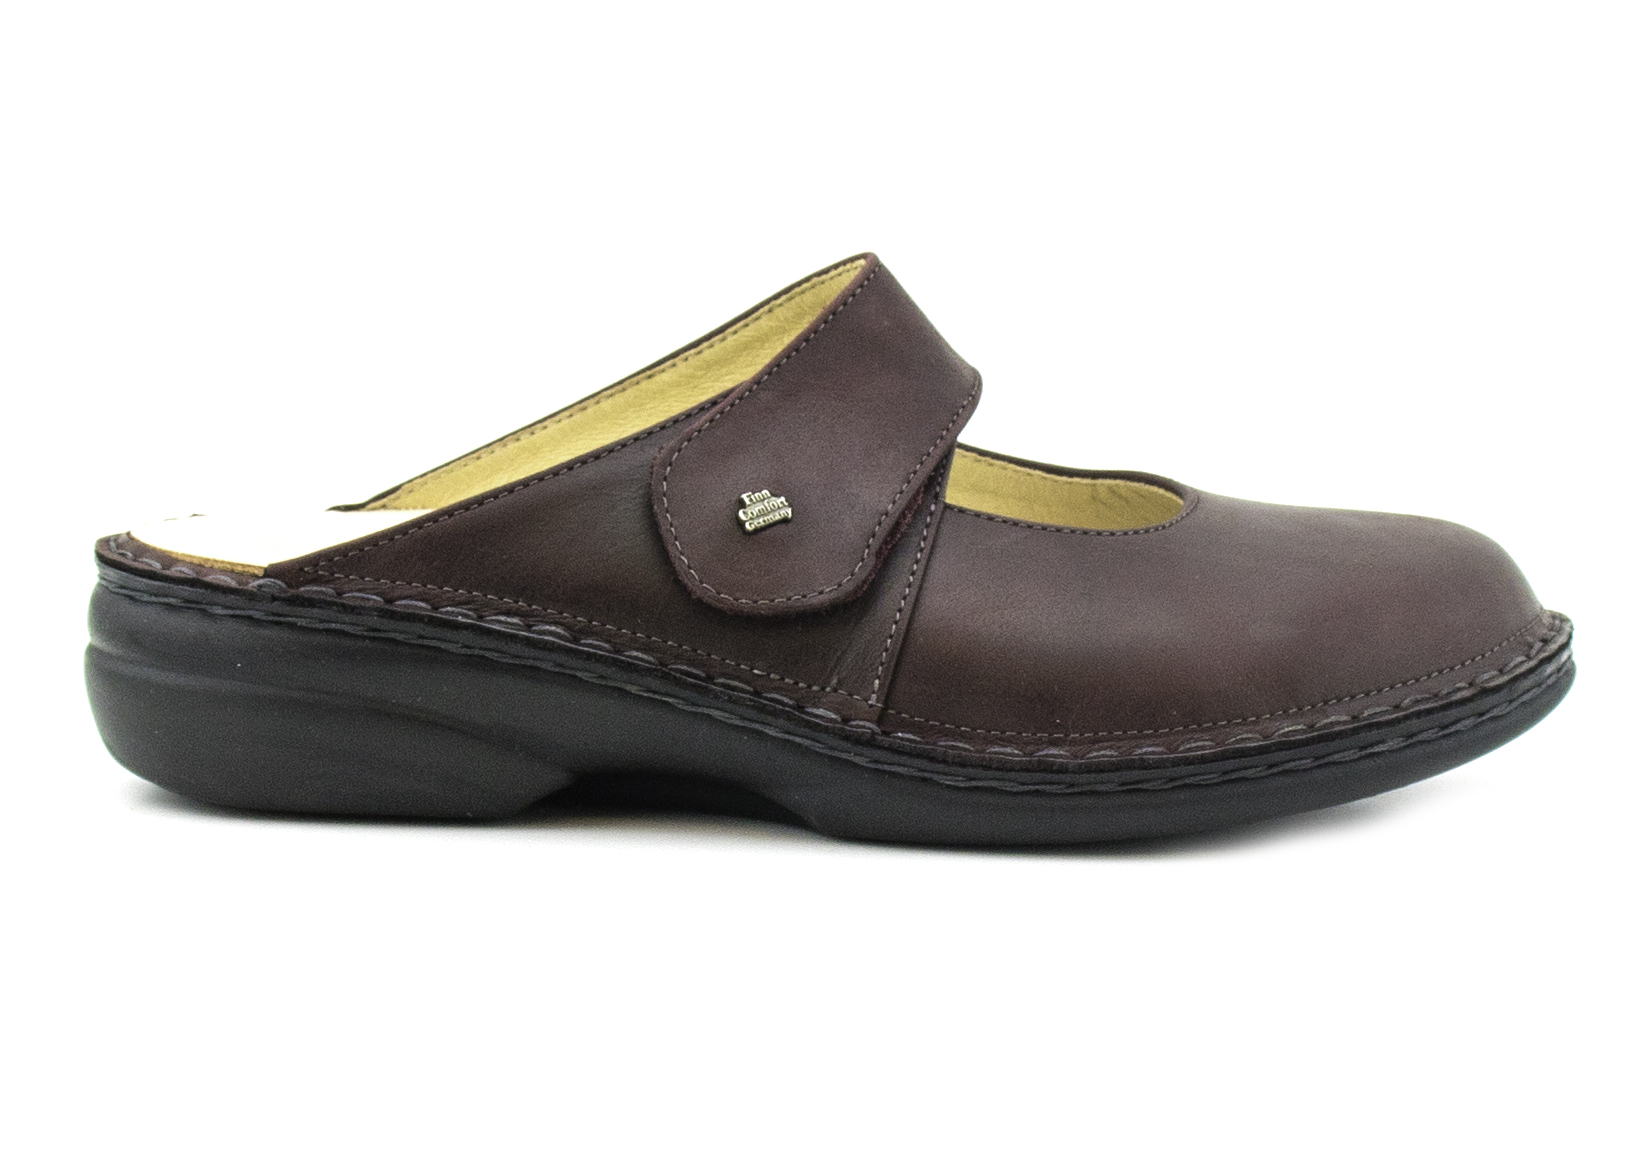 Womens Work Shoes That Fit Orthotics